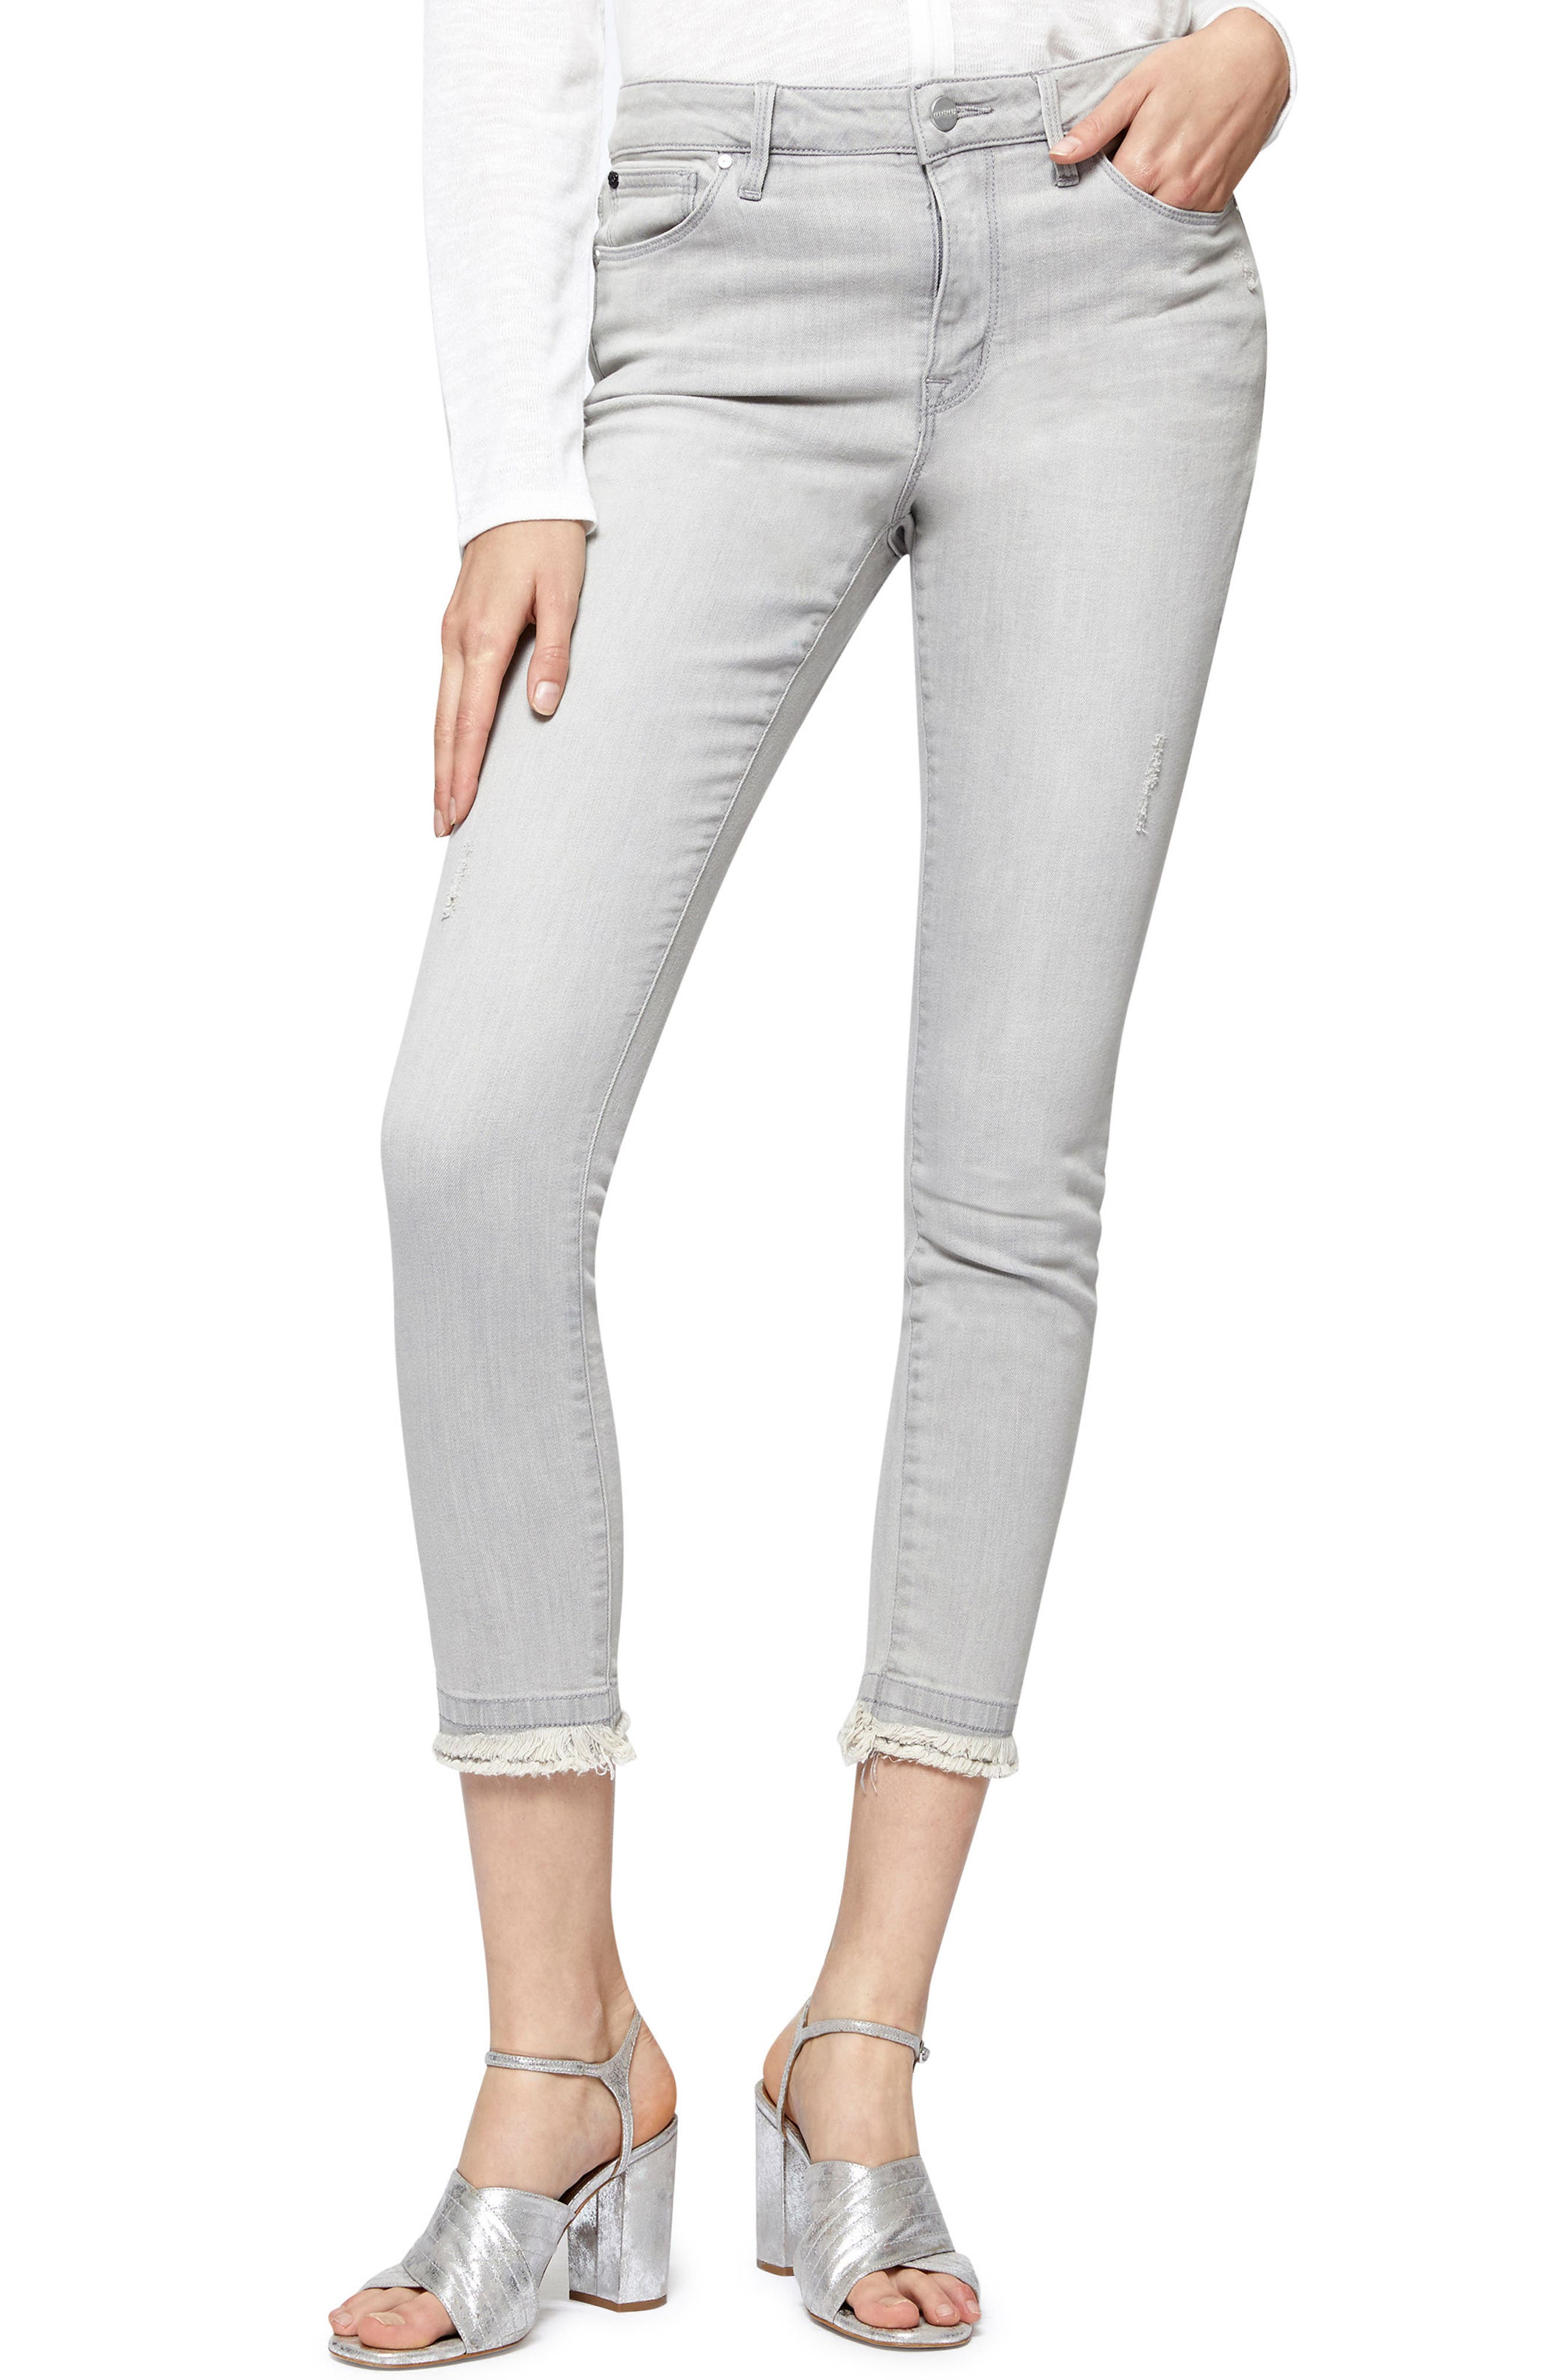 Saige Double Fray Ankle Jeans,                         Main,                         color, 020